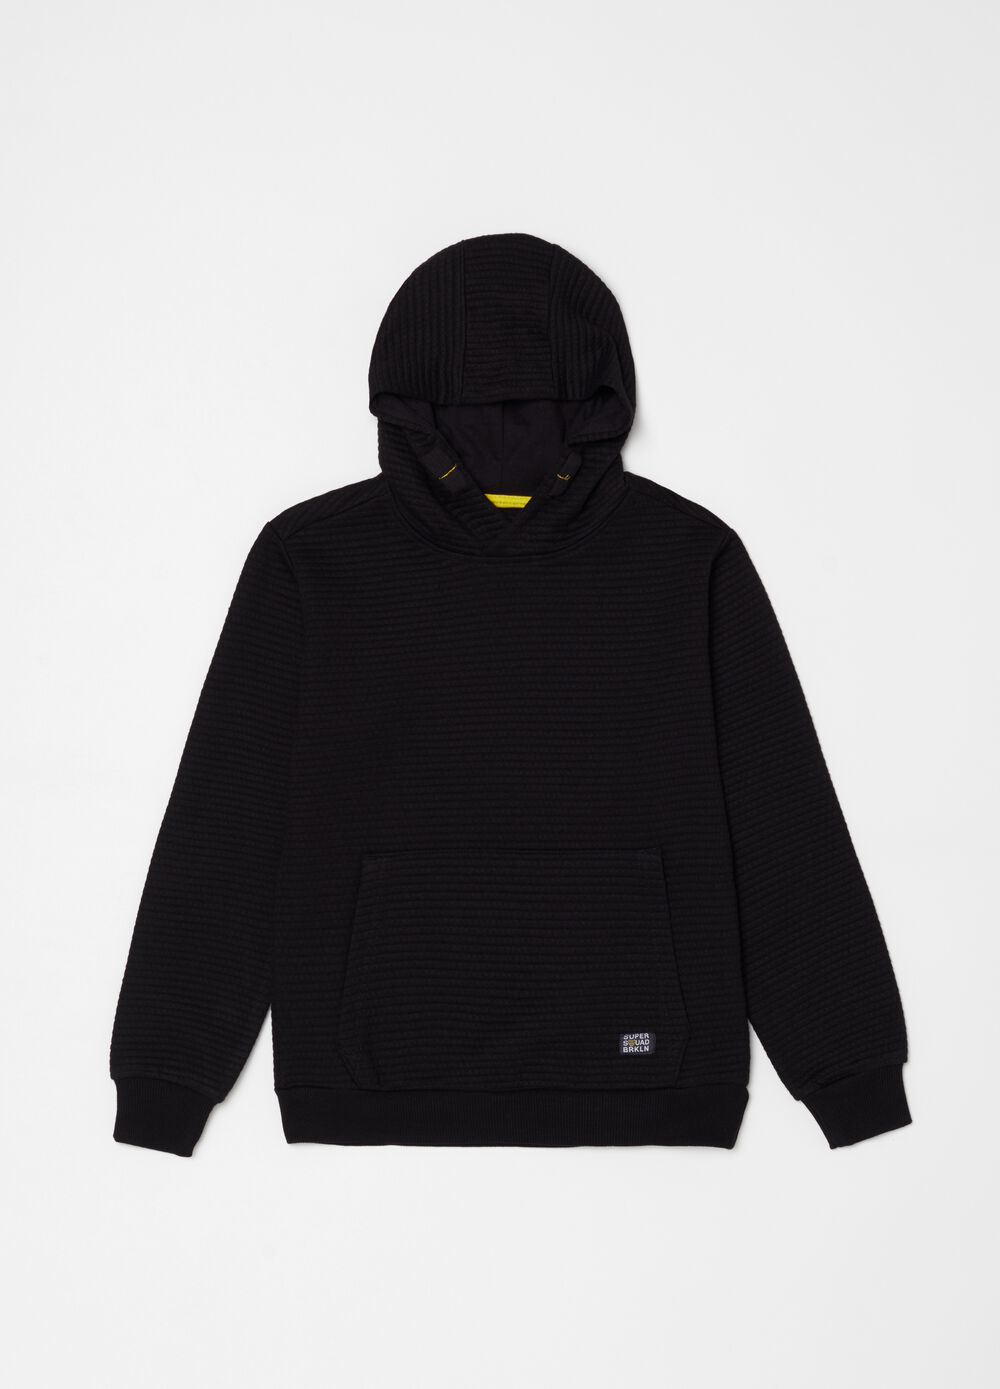 Quilted sweatshirt with hood and pocket